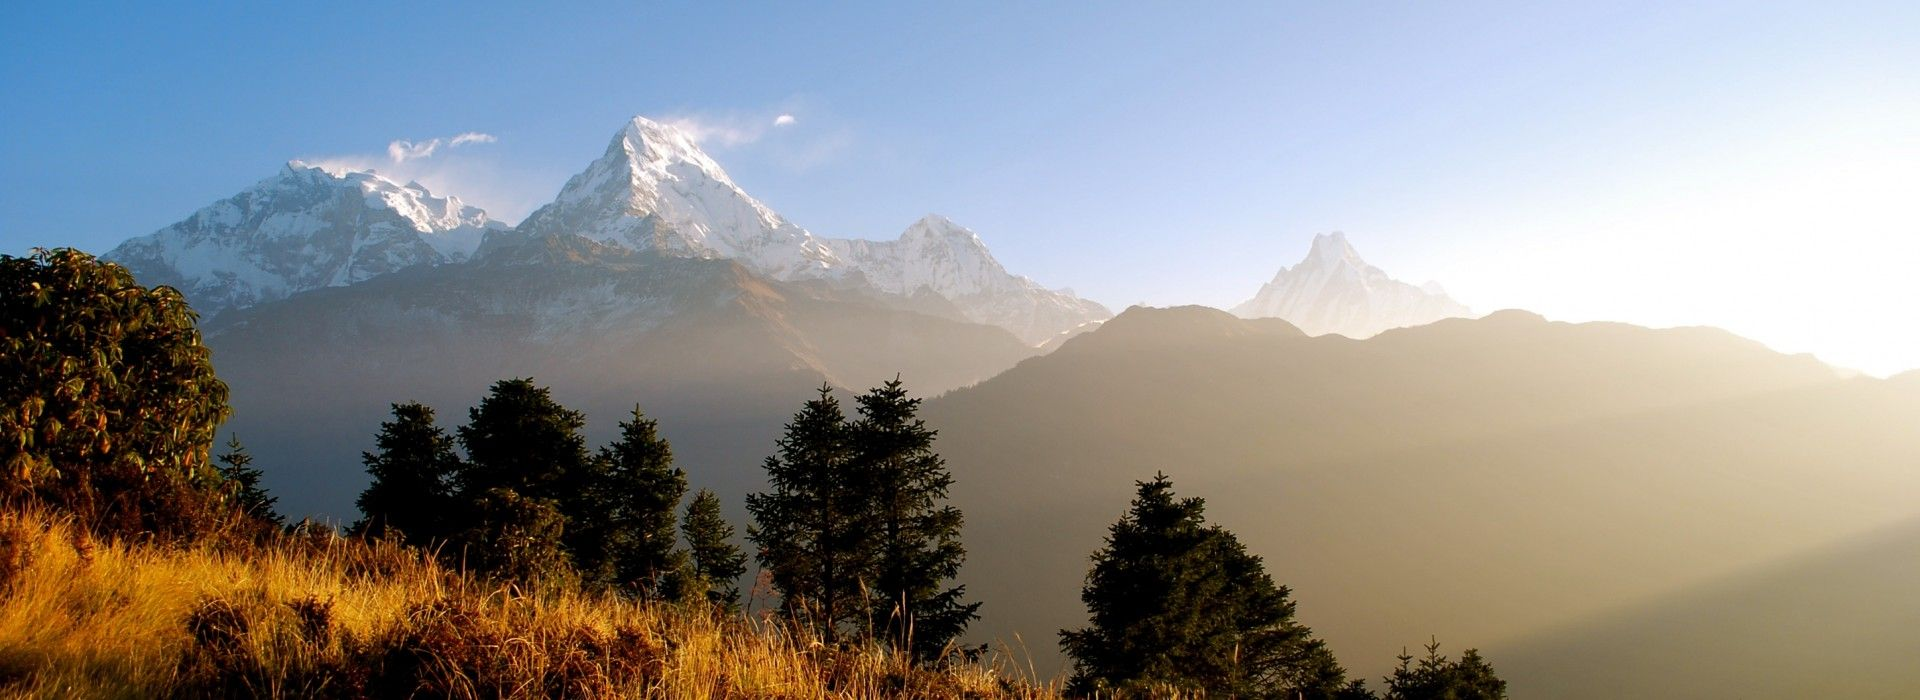 Nepal tours and trips to Nepal